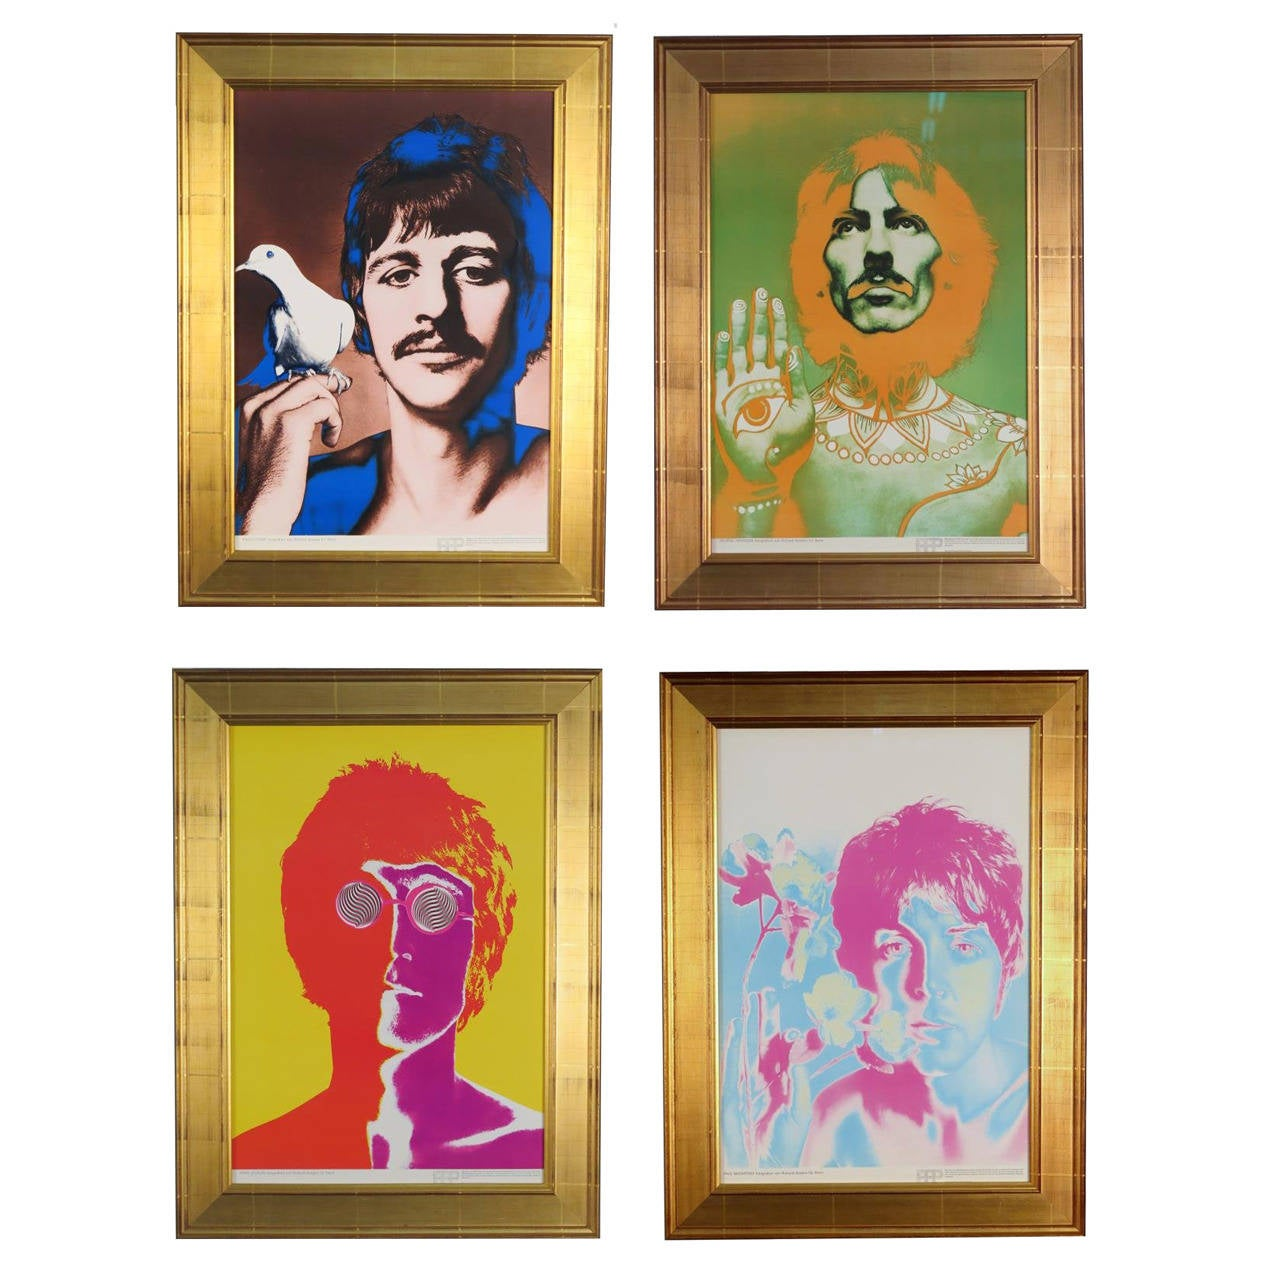 Beatles By Richard Avedon 1967 Posters For Stern Magazine Sale